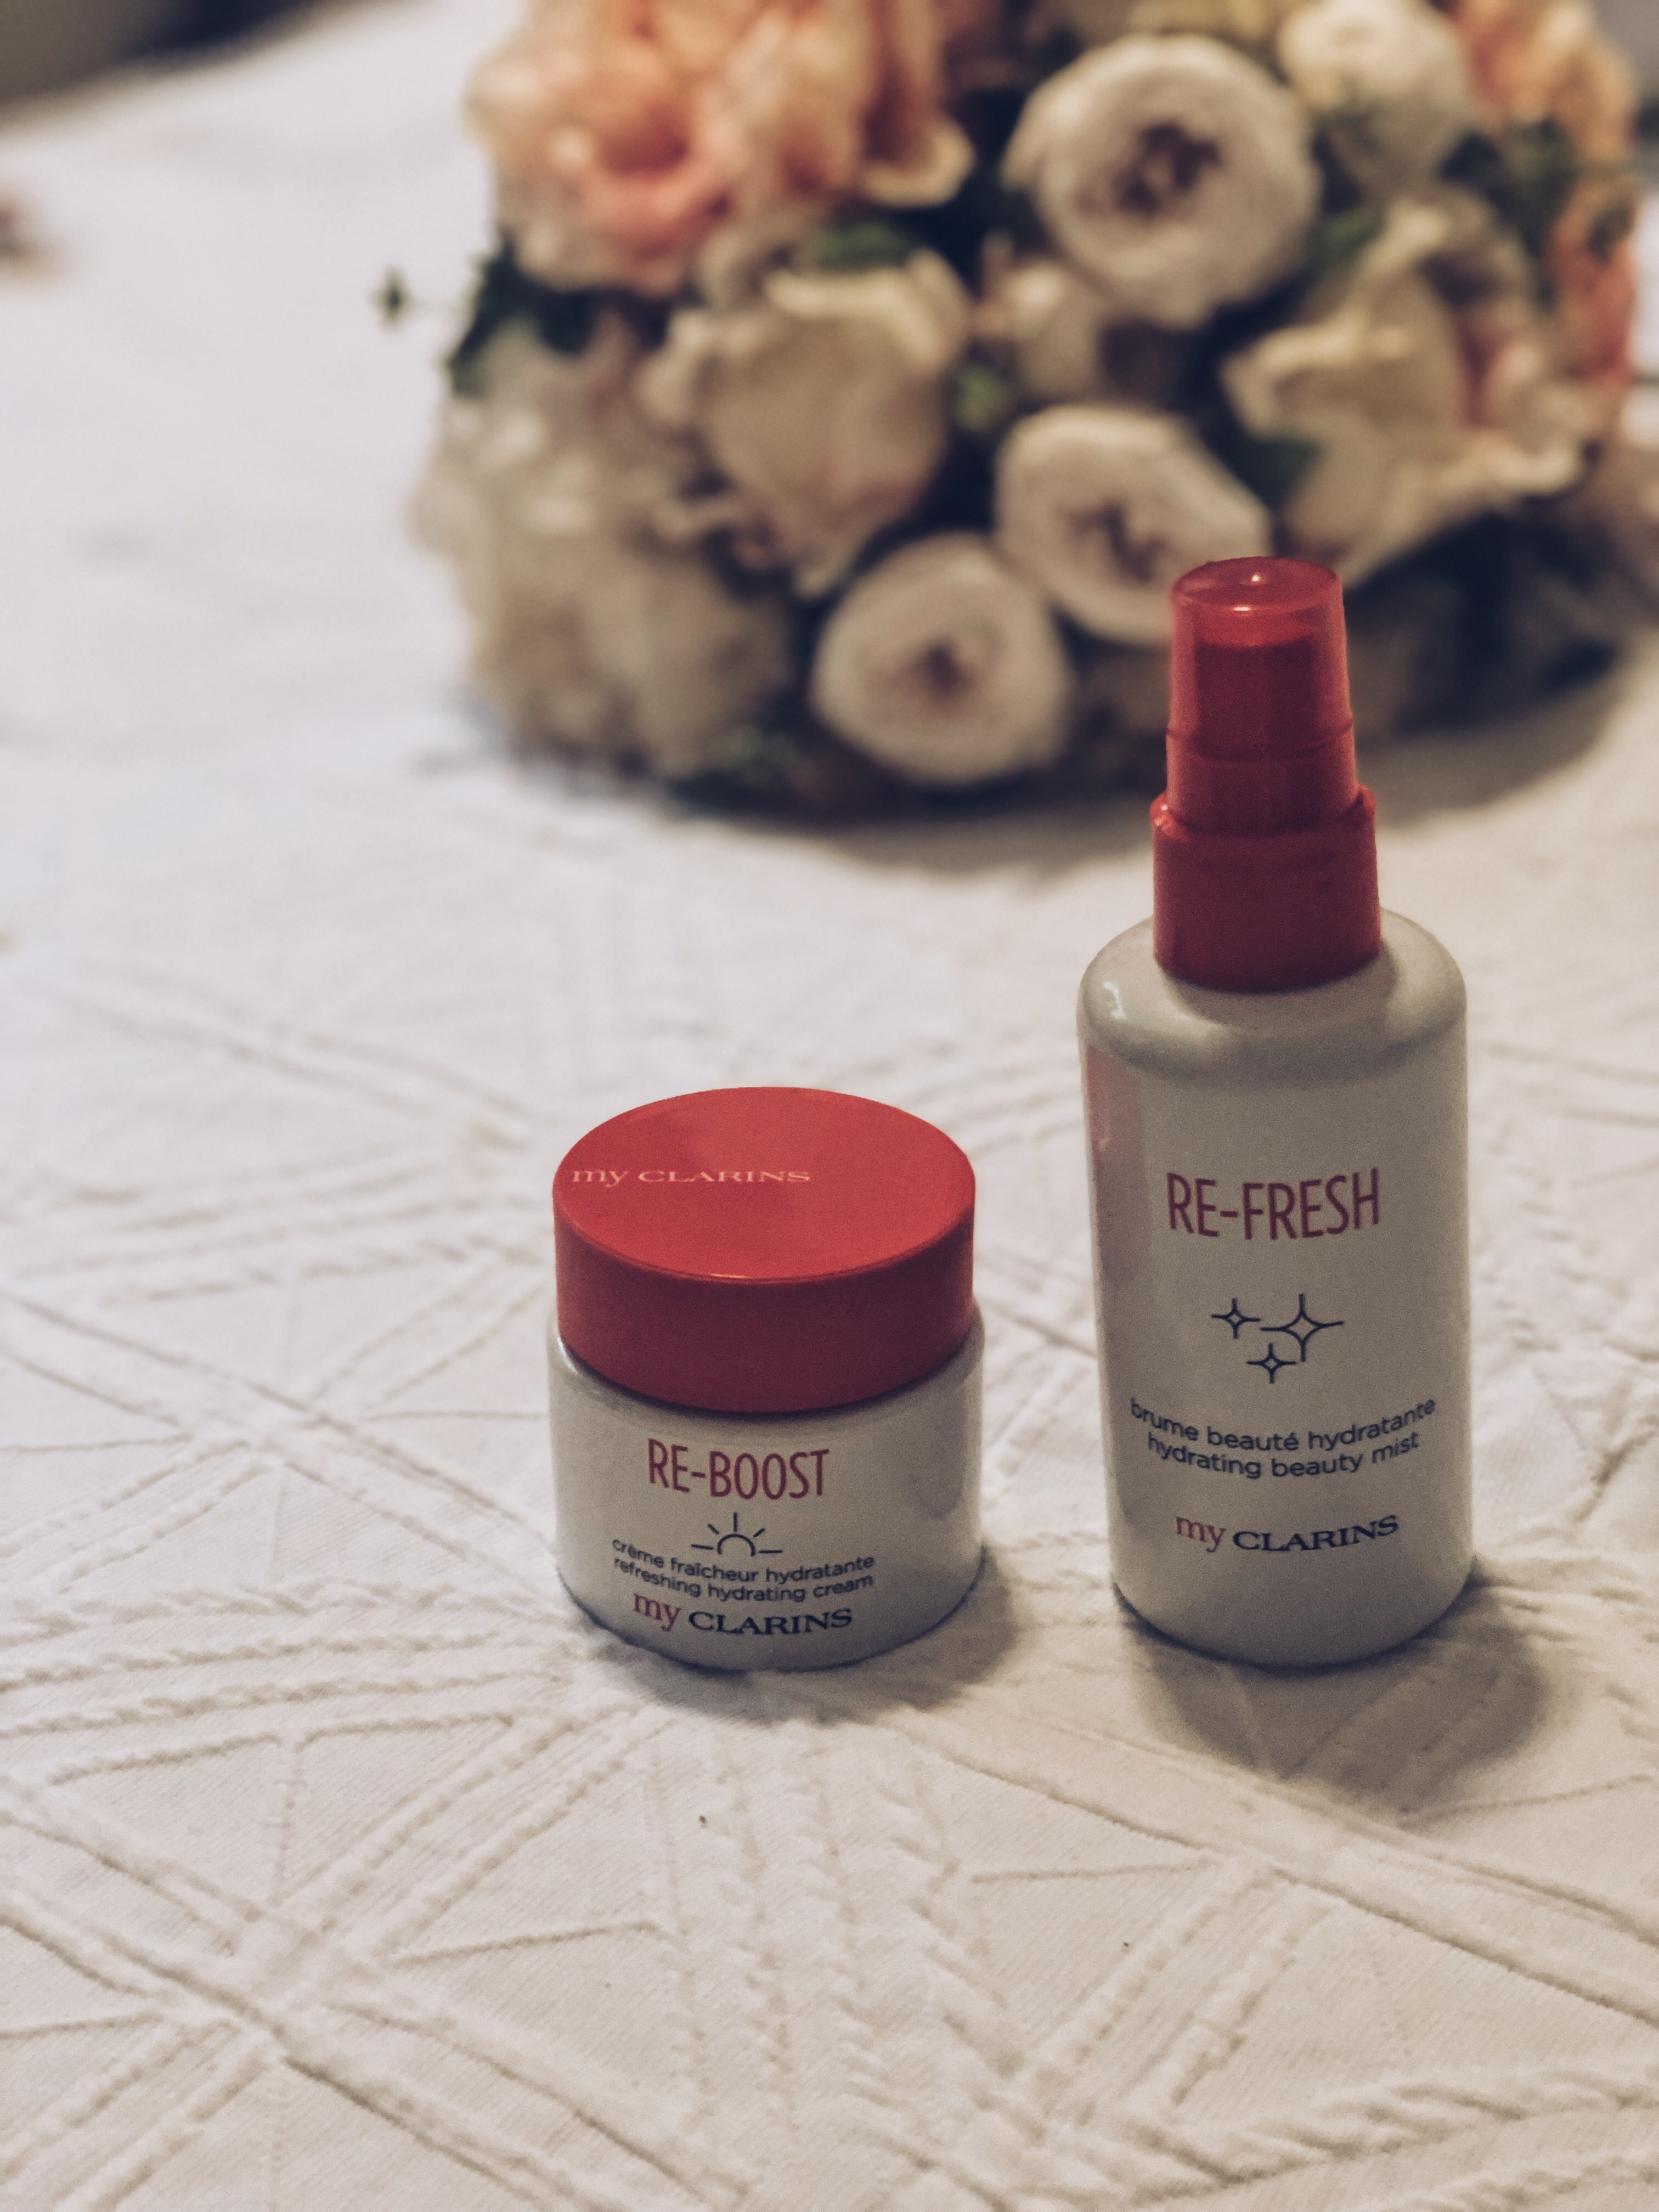 My Clarins RE-BOOST Refreshing Hydrating Cream by Clarins #17